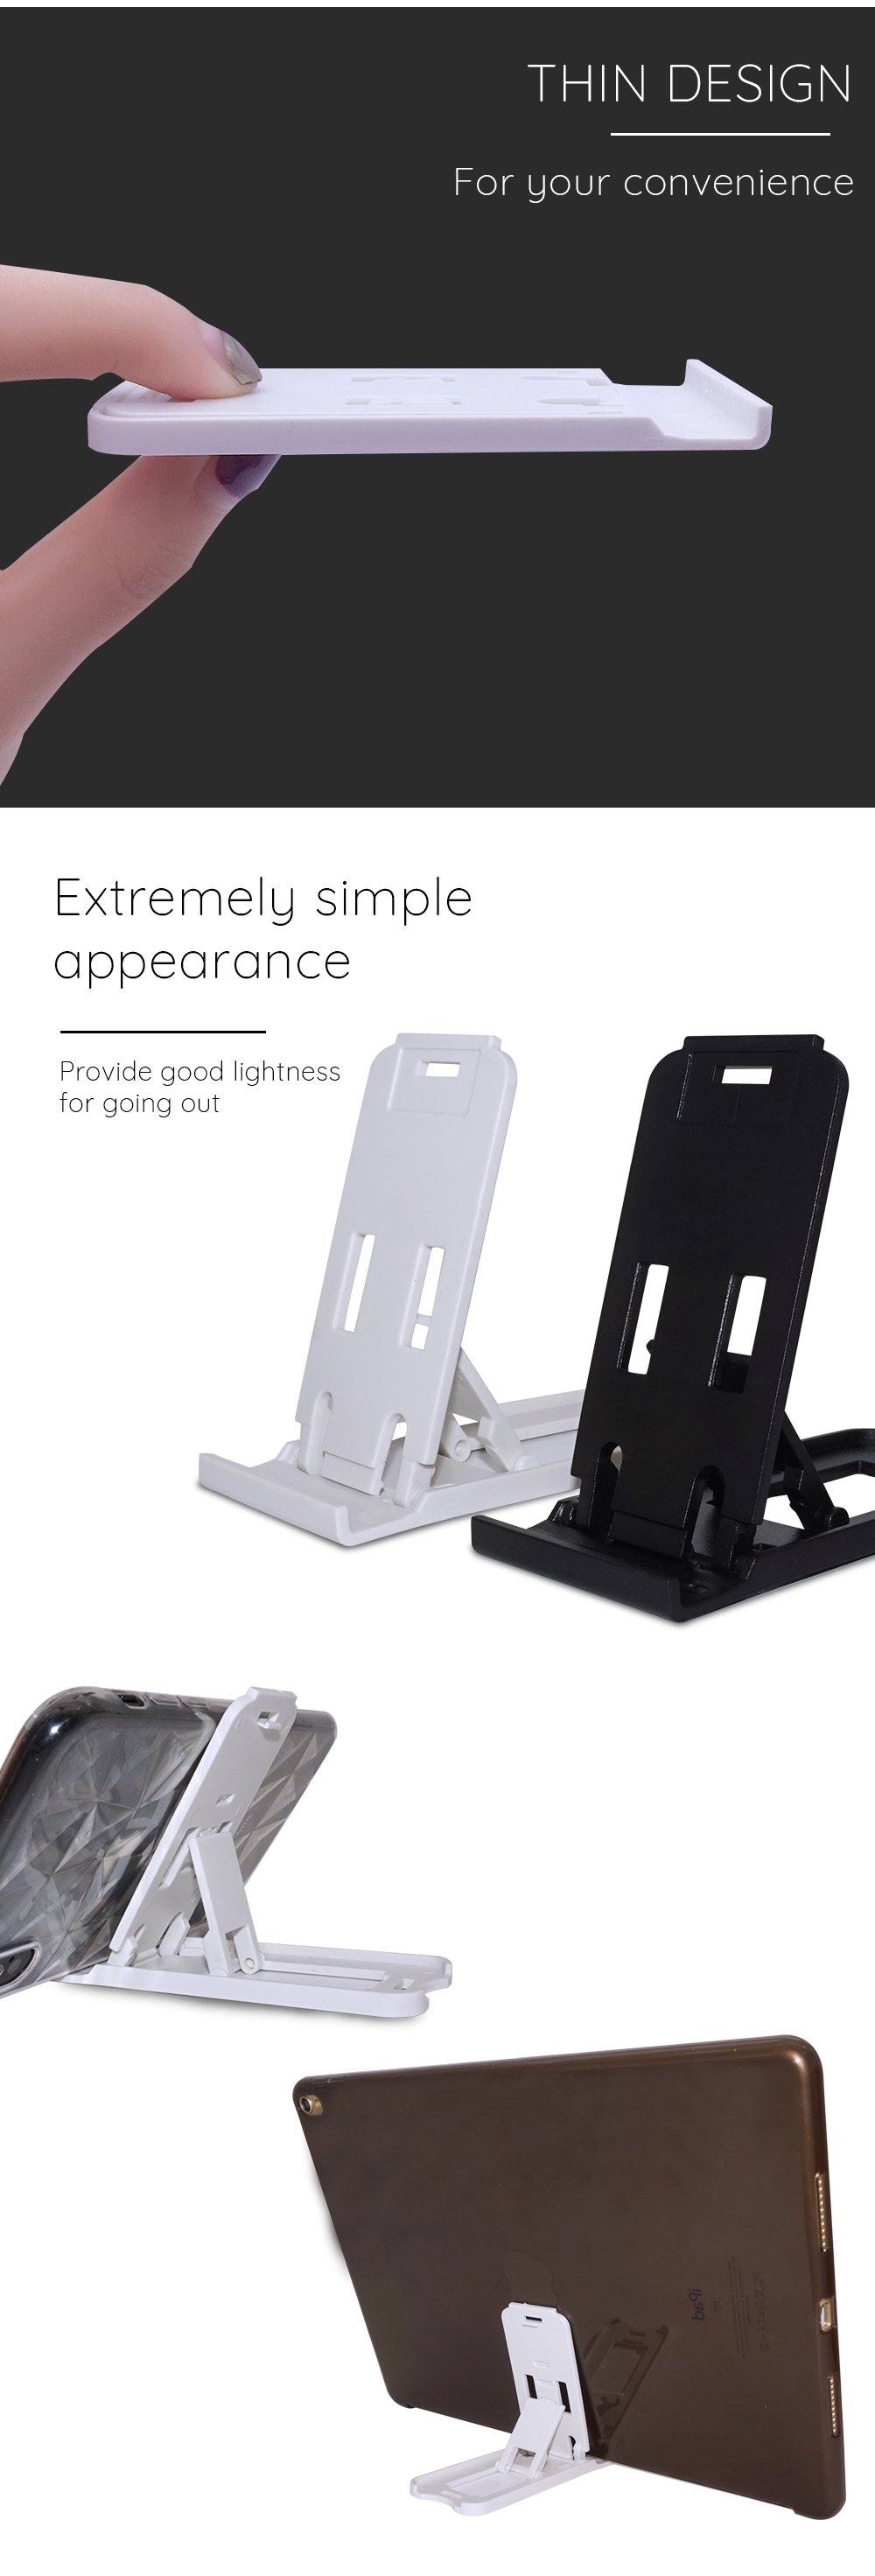 Portefeuille Mobile Phone Holder Candy Mini Desktop Stand For Huawei P20 Lite Xiaomi Mi 8 Mi8 iPhone X 7 Plus Smartphone Suporte (4)